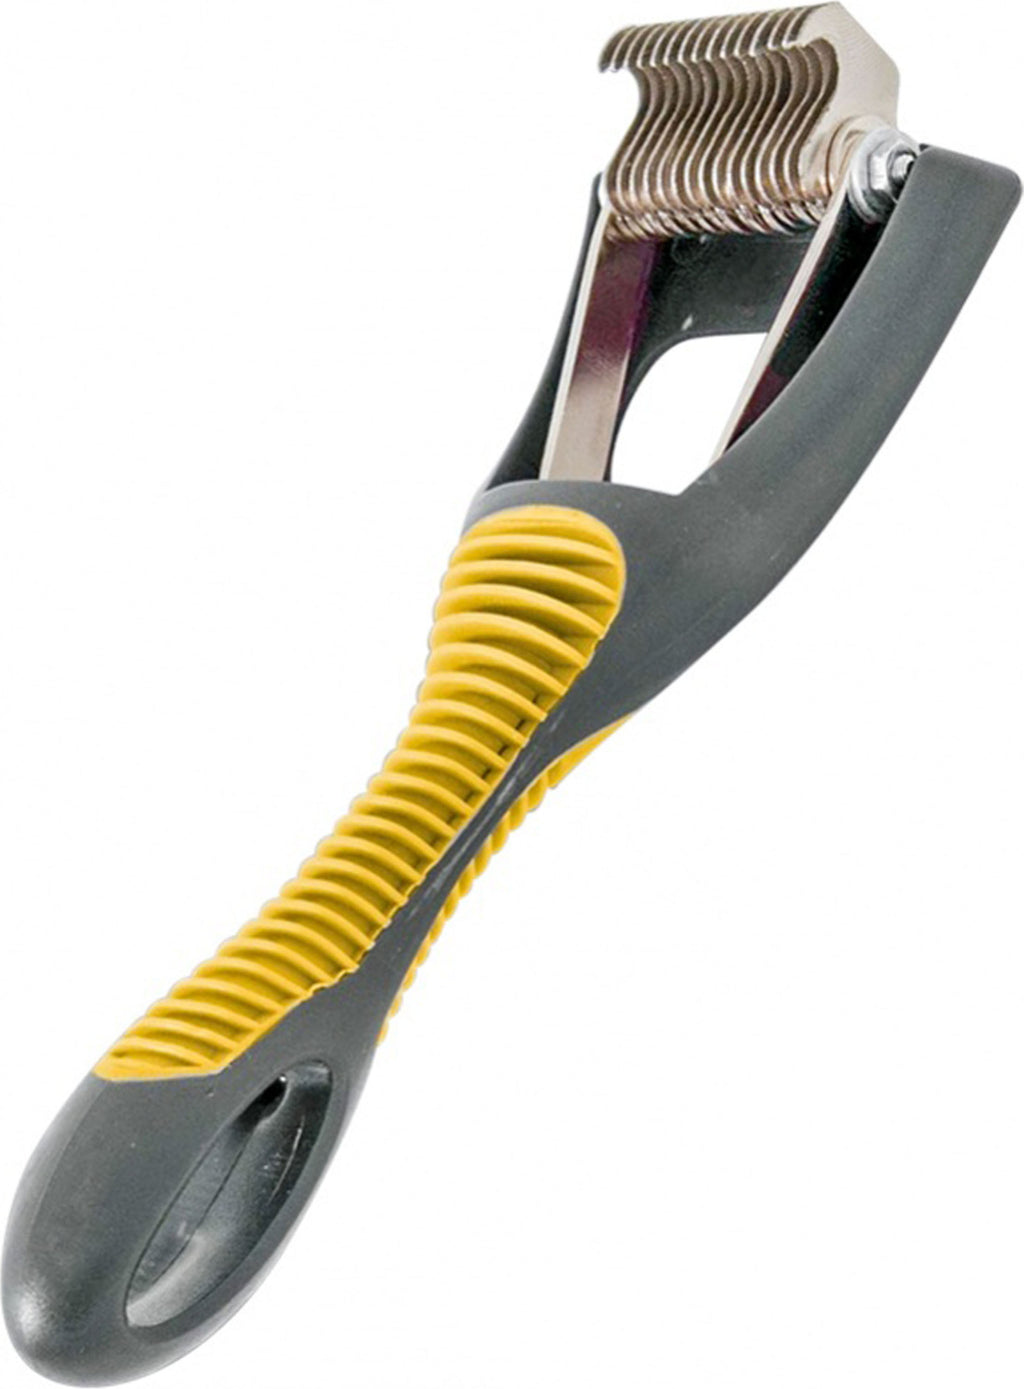 Jw Gripsoft Deshedding Tool